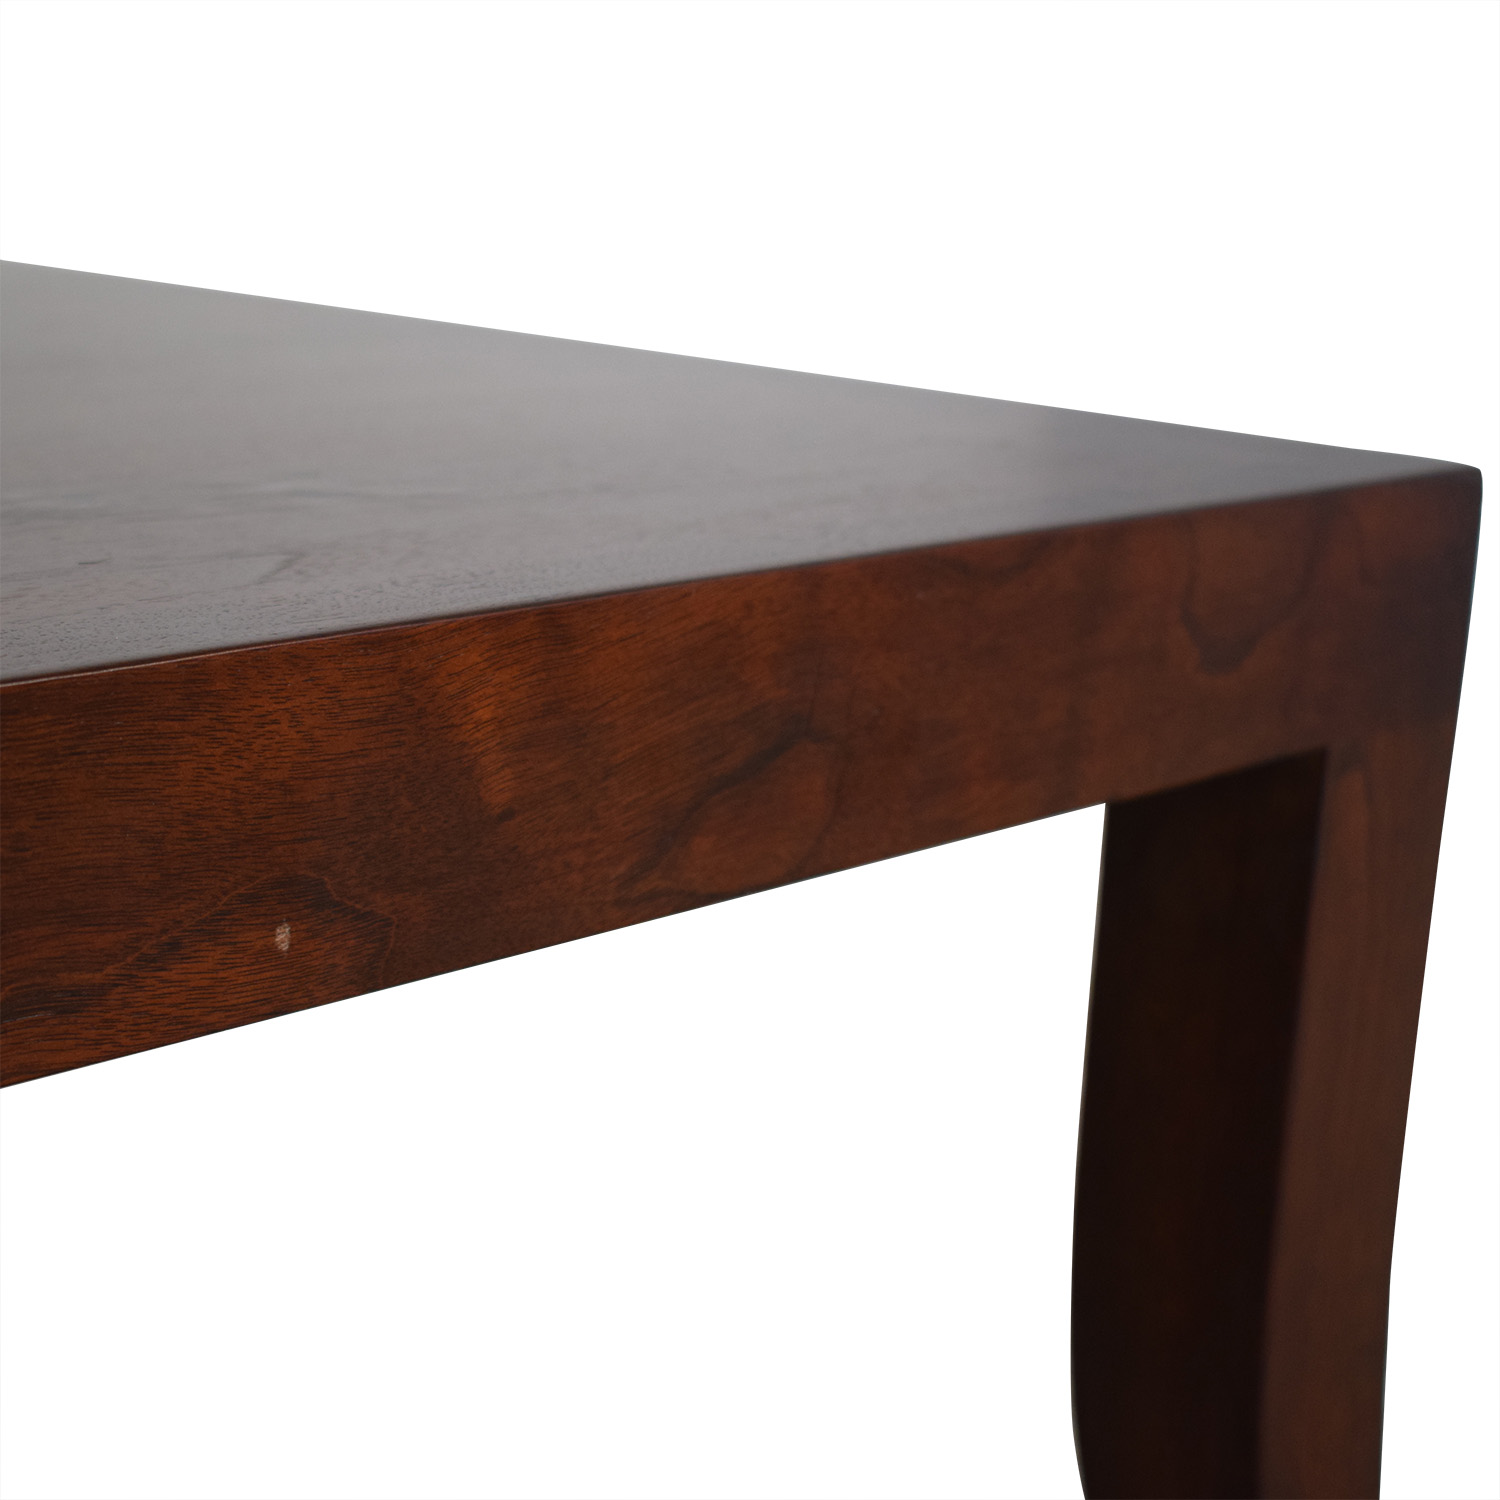 A Rudin A Rudin Square Coffee Table second hand